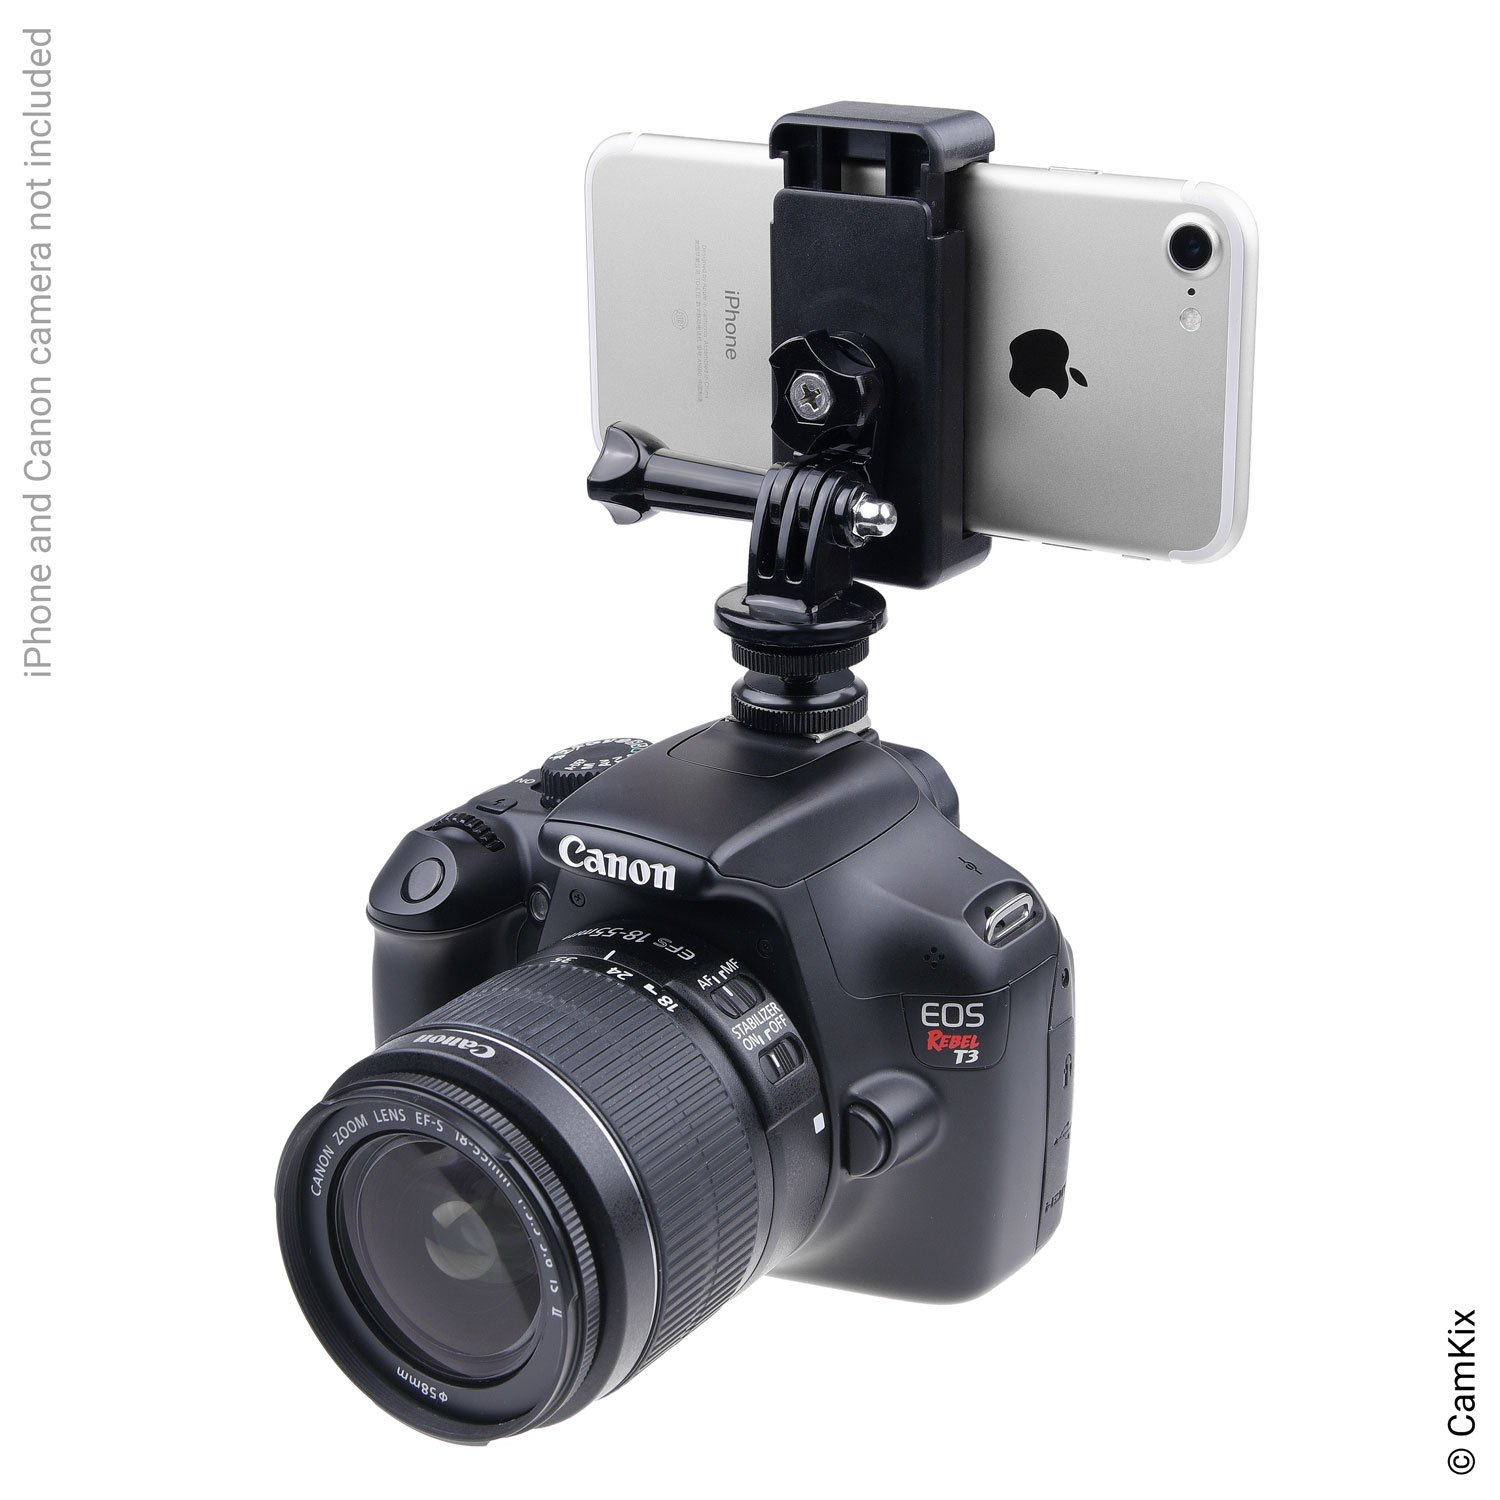 Hot Shoe Mount Adapter Kit - Attach Your Phone or GoPro Hero